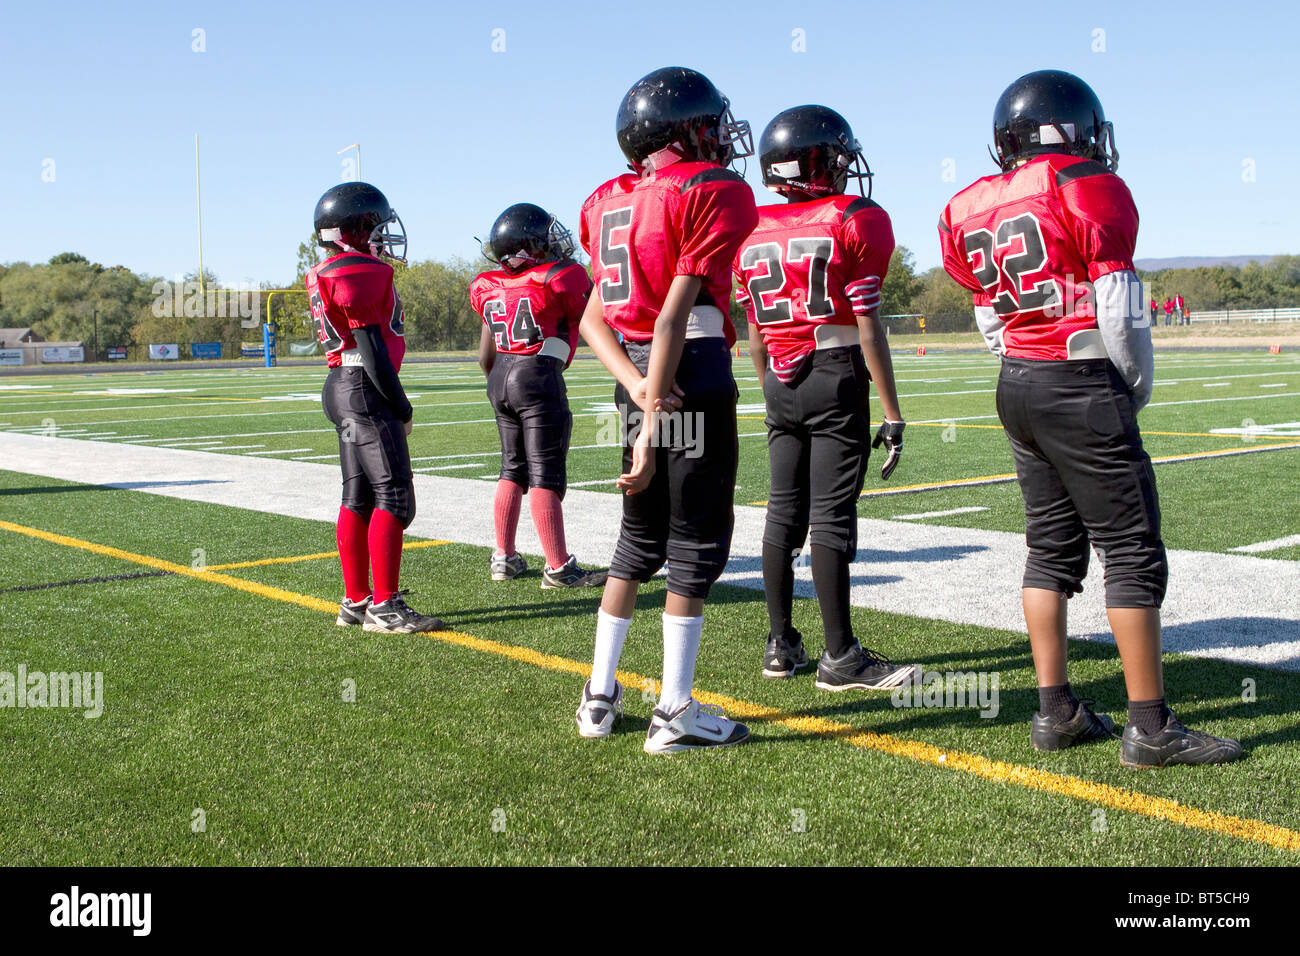 Players on the sidelines during an american football inner city league game in Roanoke, Virginia. - Stock Image